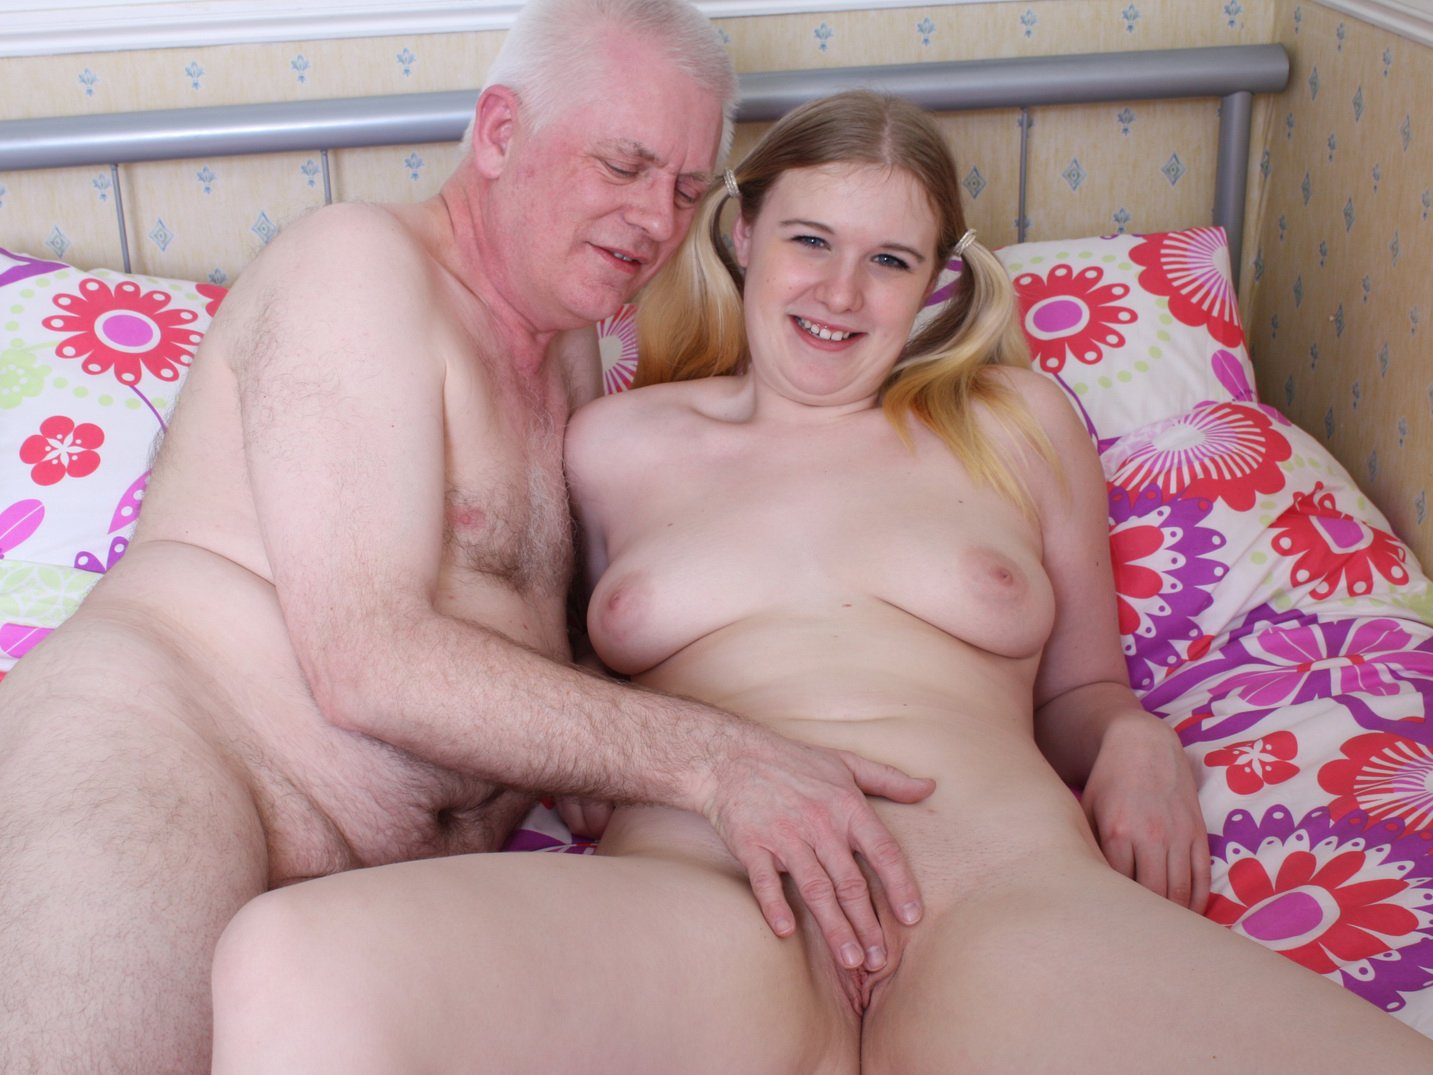 Chubby Teen Fucking Older Man